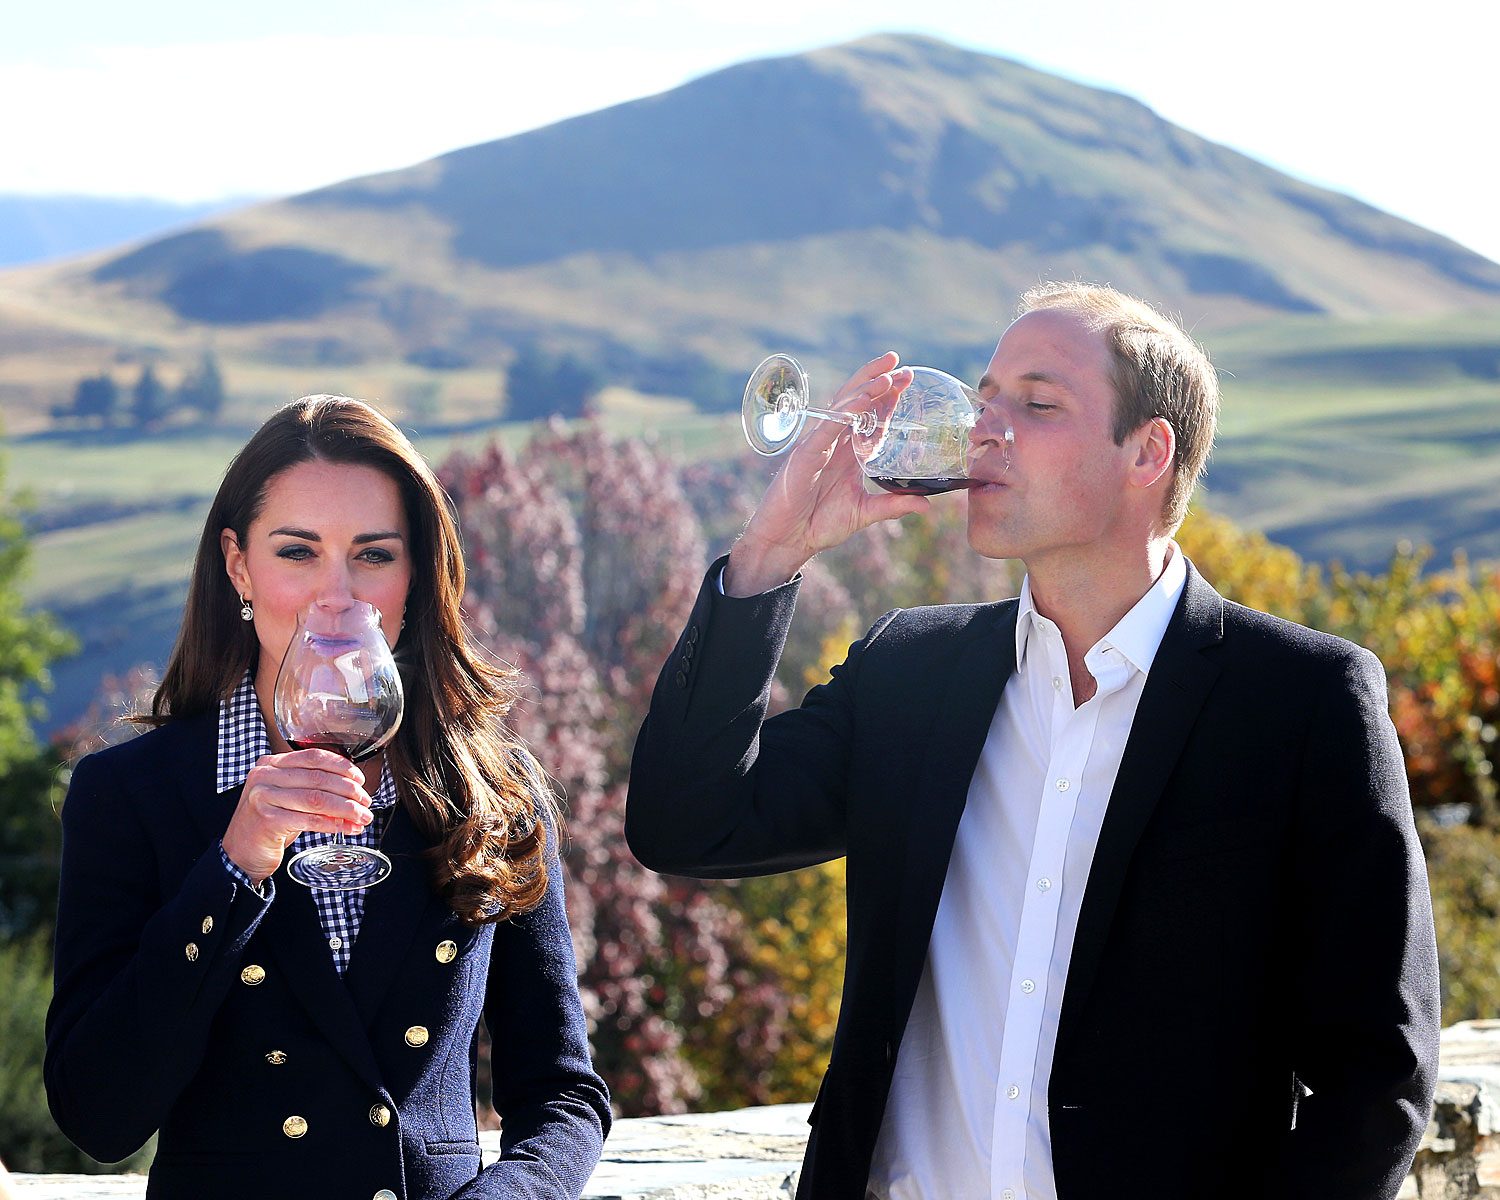 william dating kate Prince william began dating kate middleton, a fellow student from st andrews, in 2003 they broke up briefly in 2007, but reunited the same year.